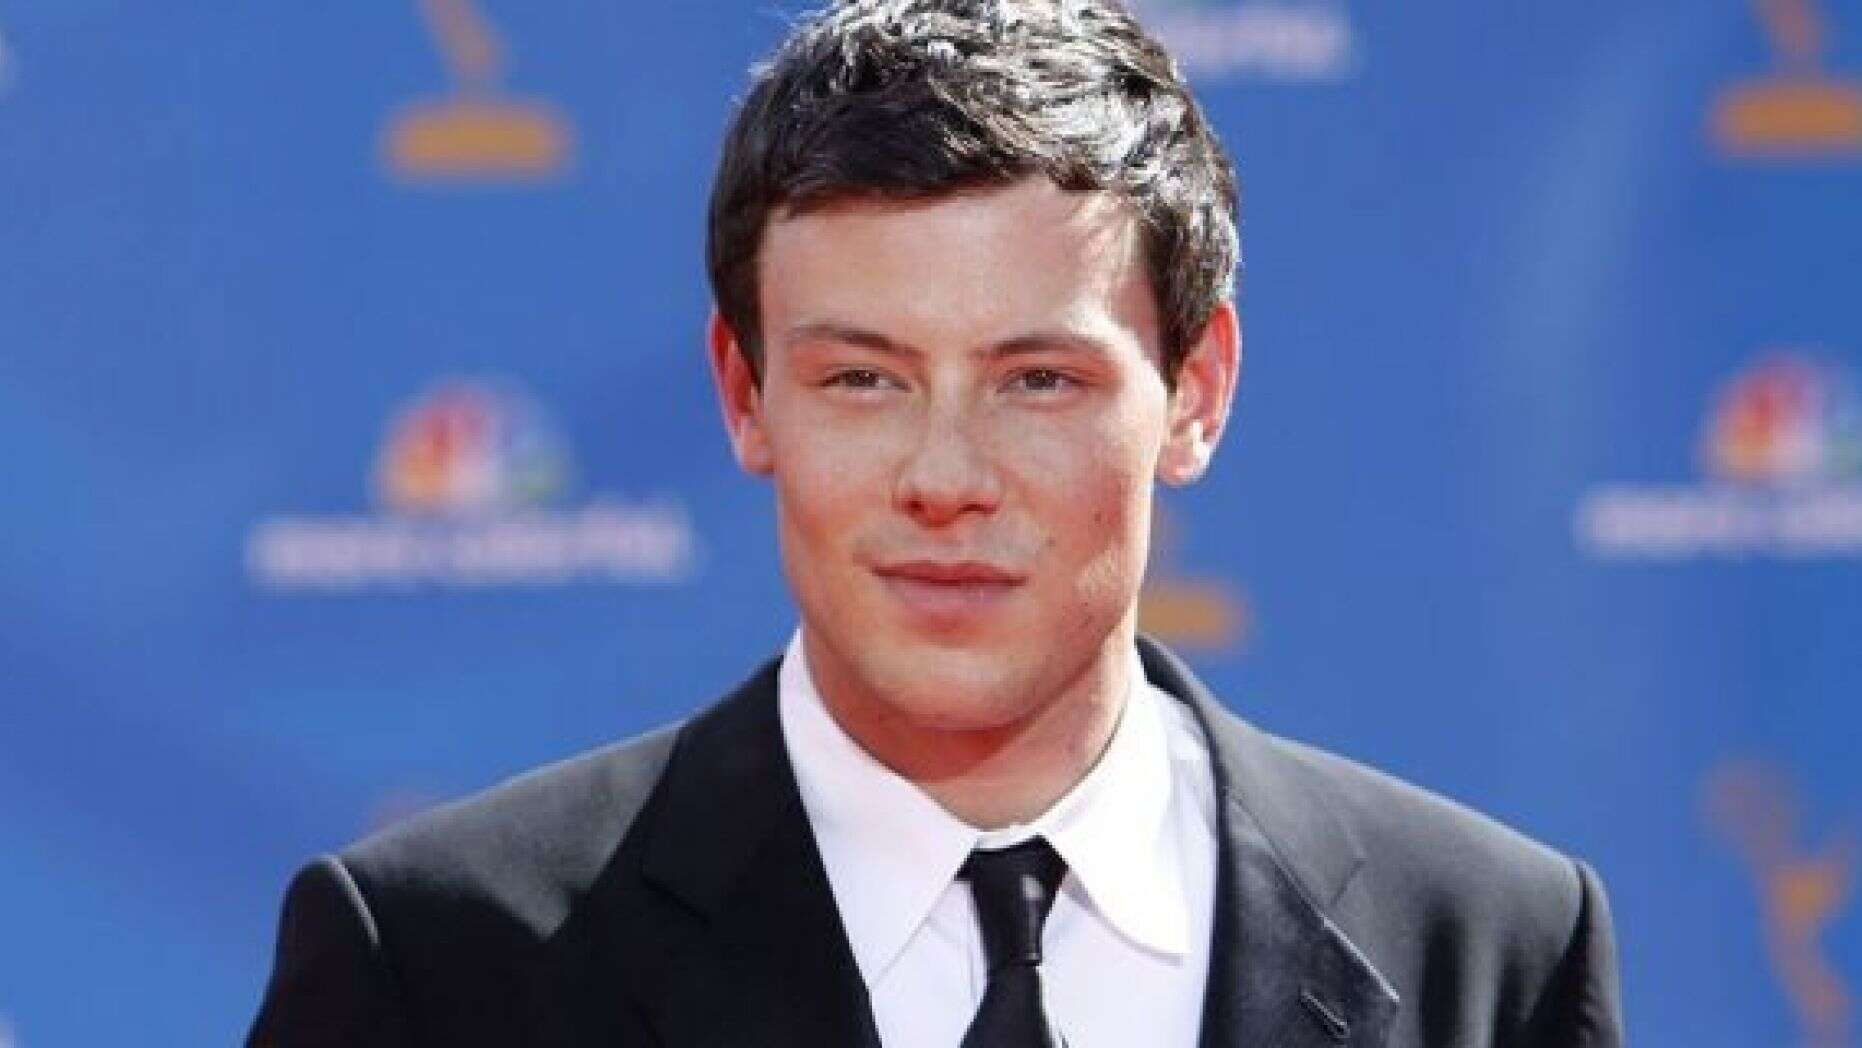 Cory Monteith Canadian Actor, Singer, Musician